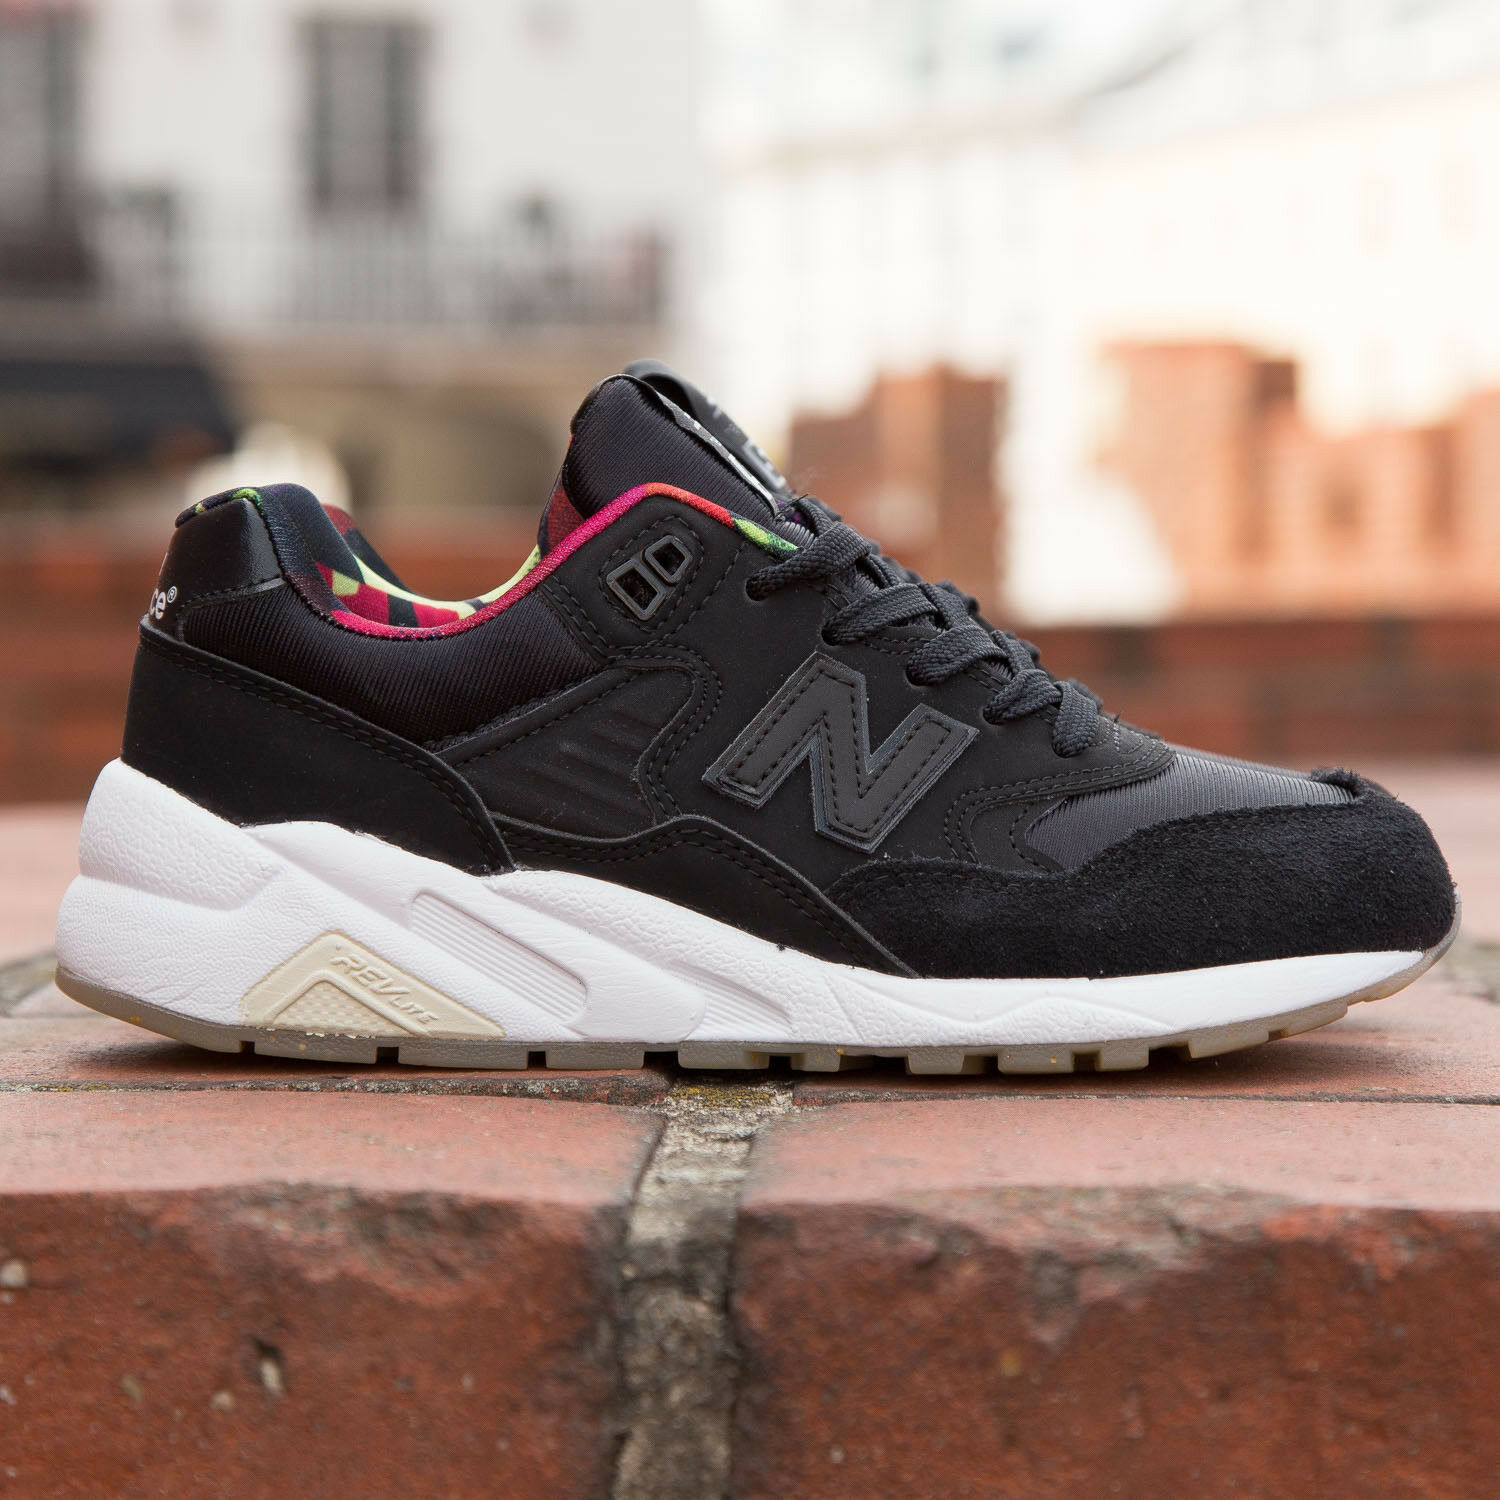 New Balance 580 WRT580RK noir femme (taille 7 - 9.5) capsule collection